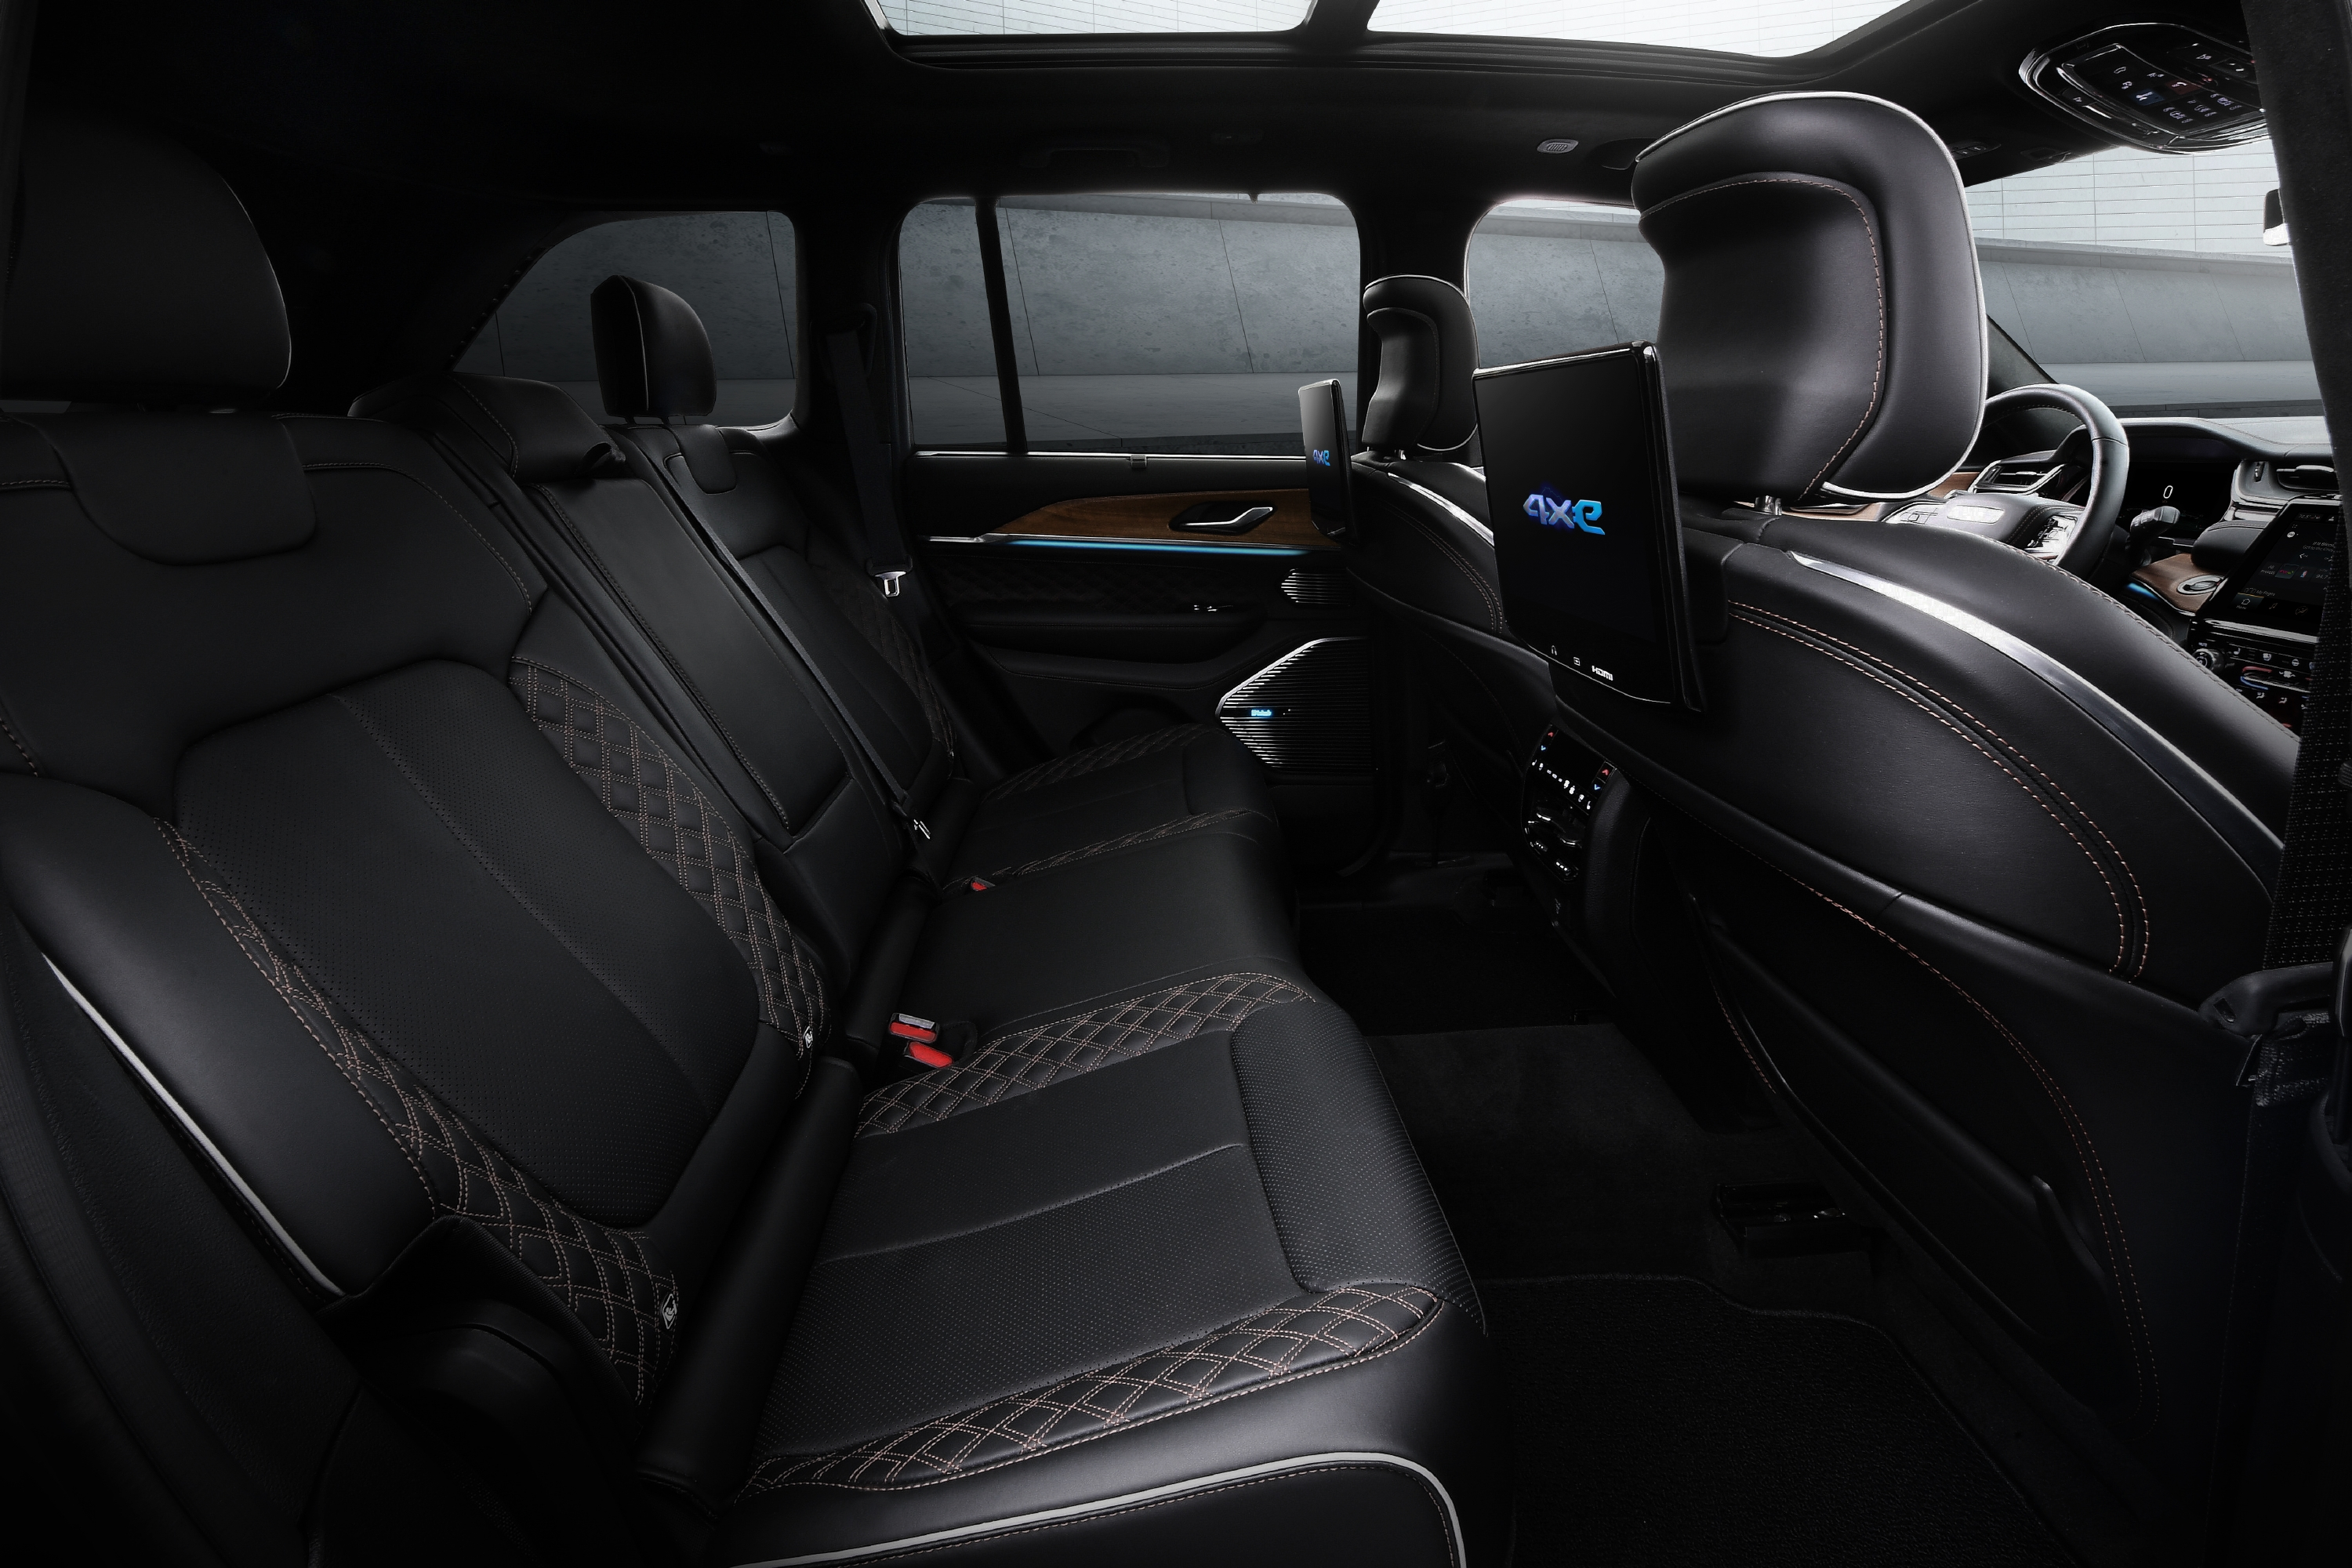 All-new 2022 Jeep® Grand Cherokee features two 10.1-inch enterta